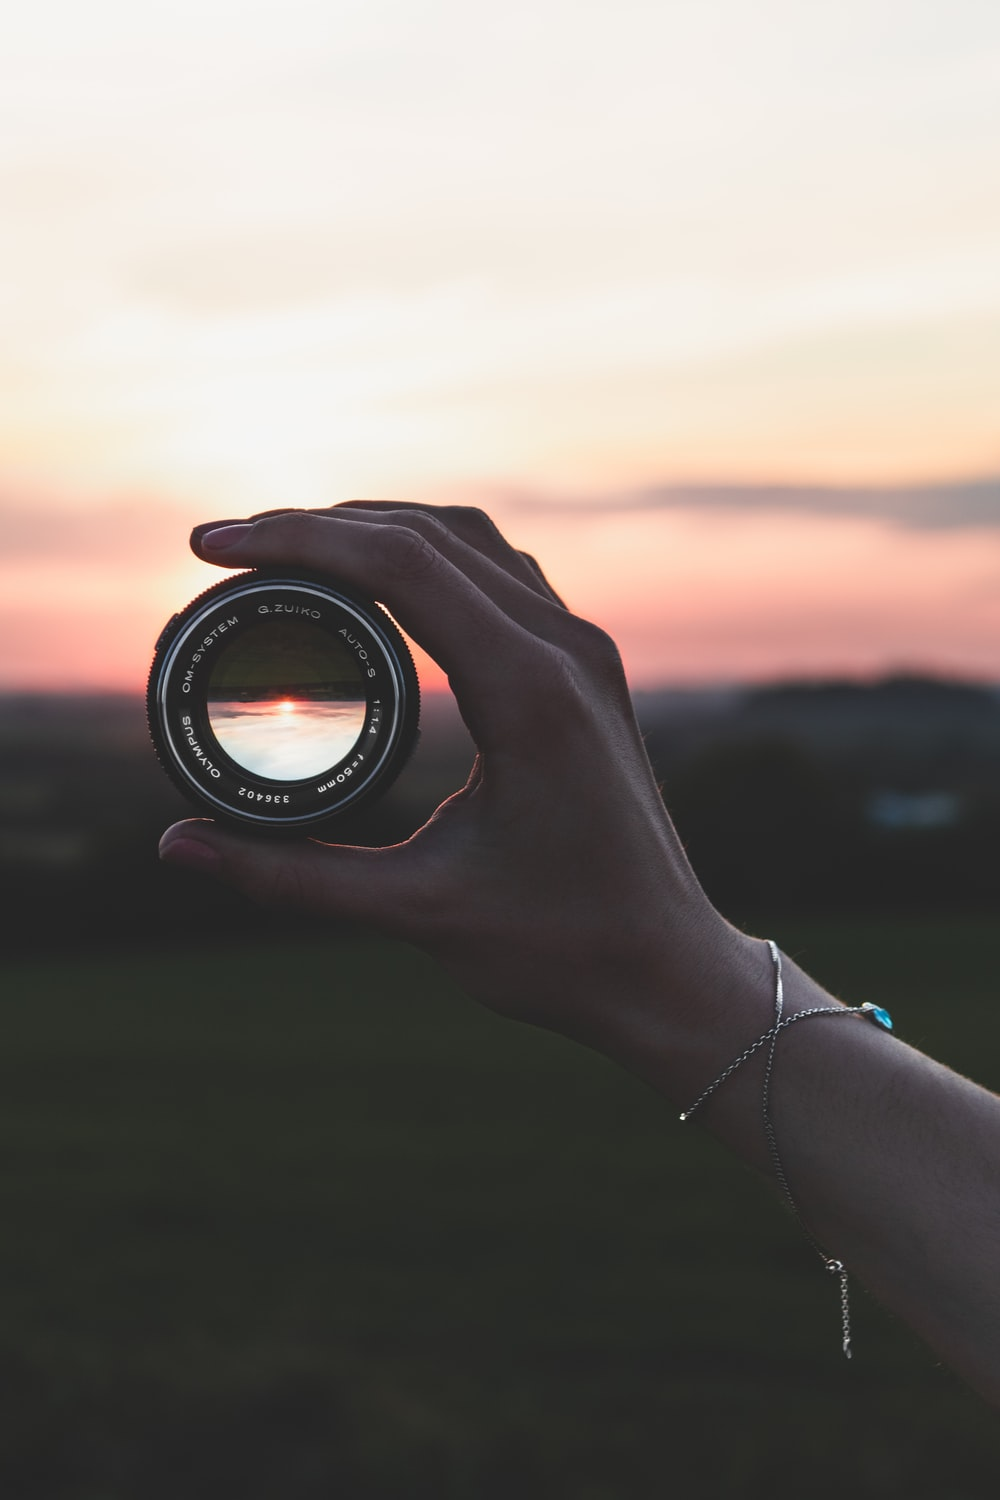 person holding black round camera lens during sunset